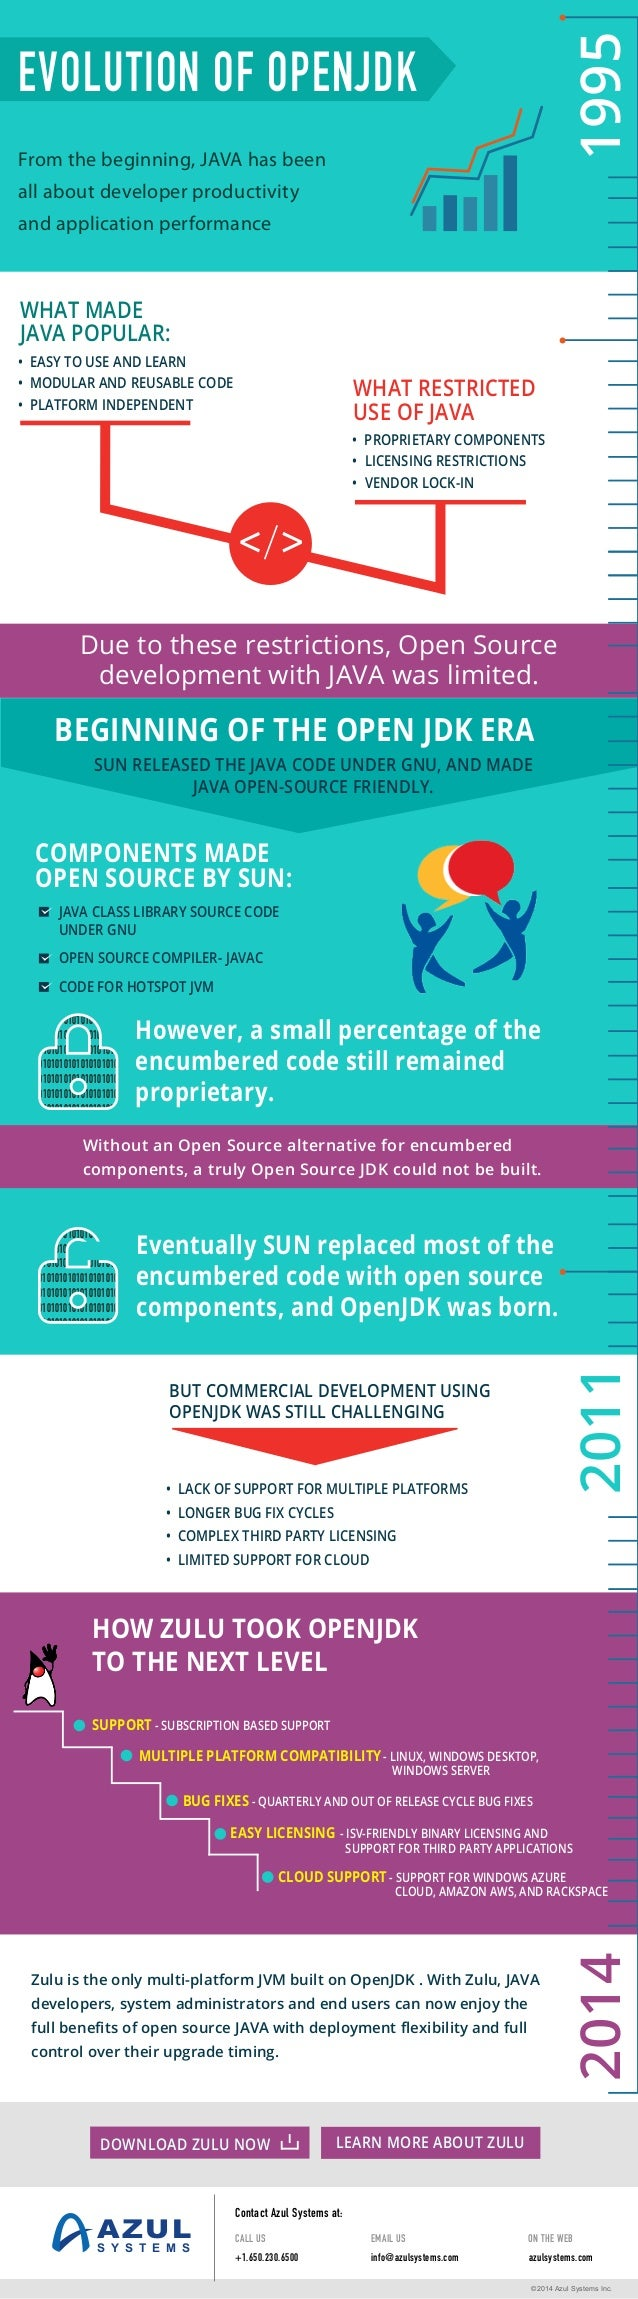 The evolution of OpenJDK: From Java's beginnings to 2014